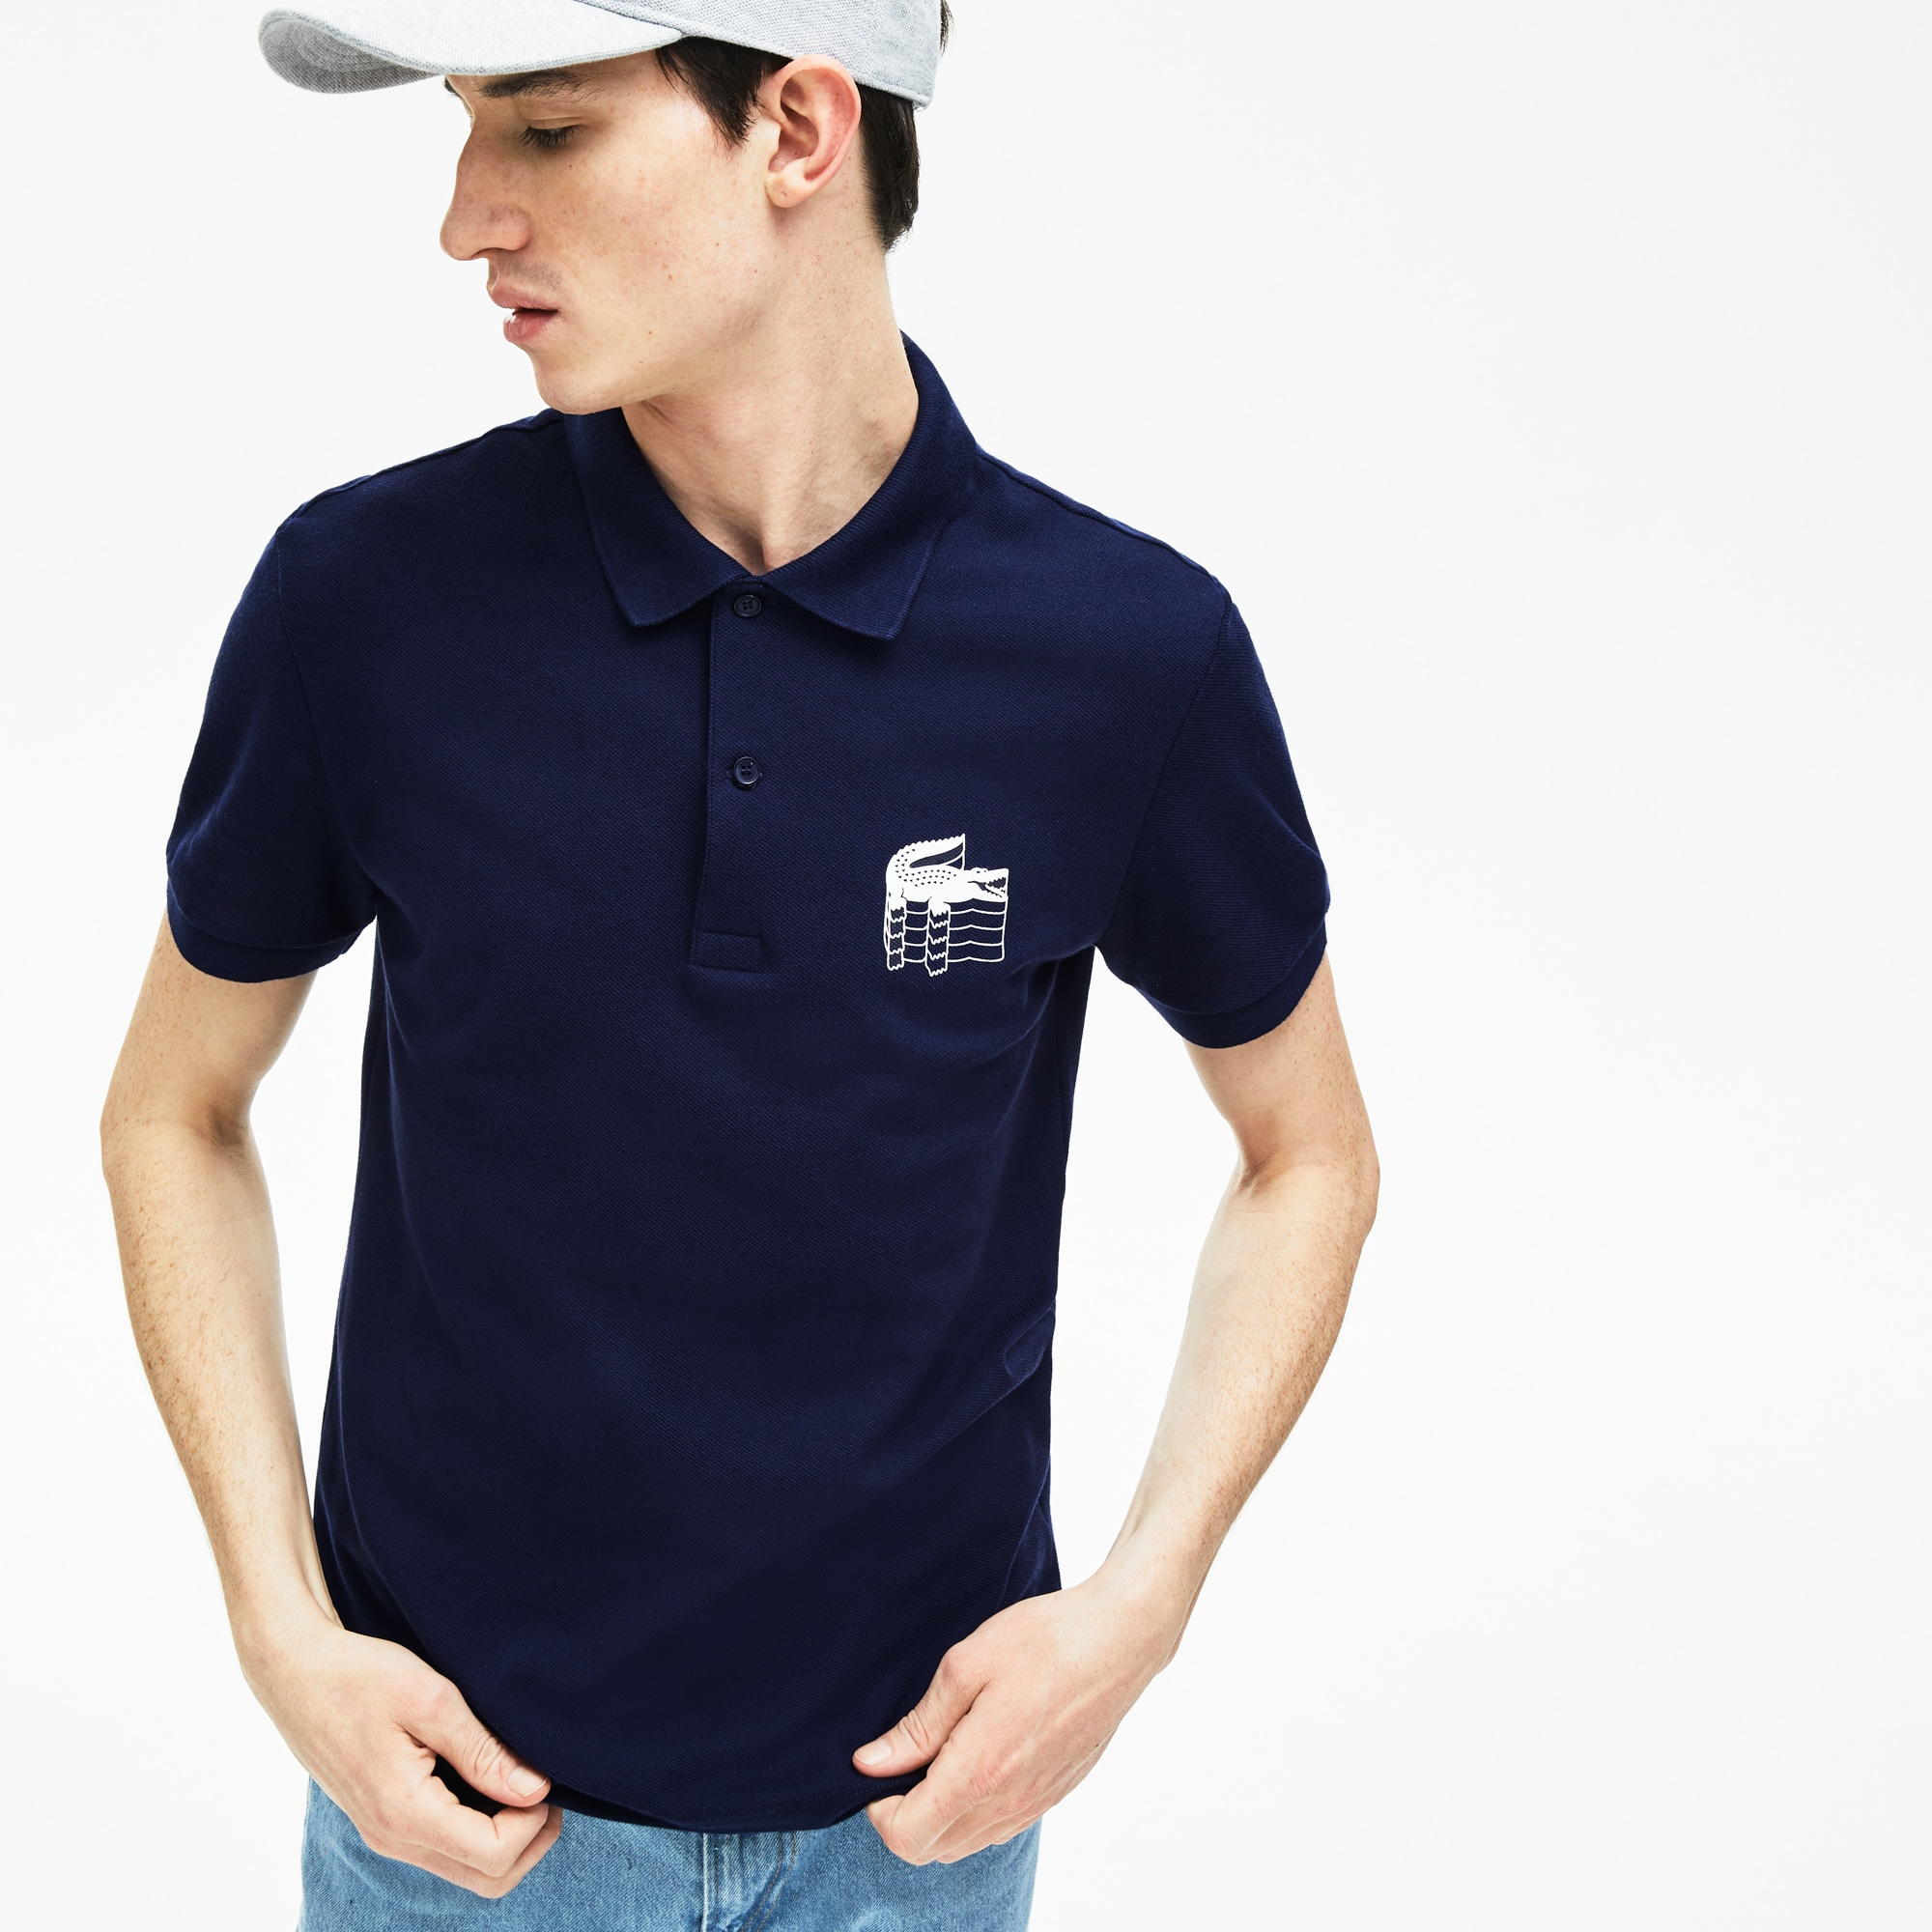 0b5883d8a441 Polo Shirts on Sale | The Lacoste Polo Shirt Sale | LACOSTE